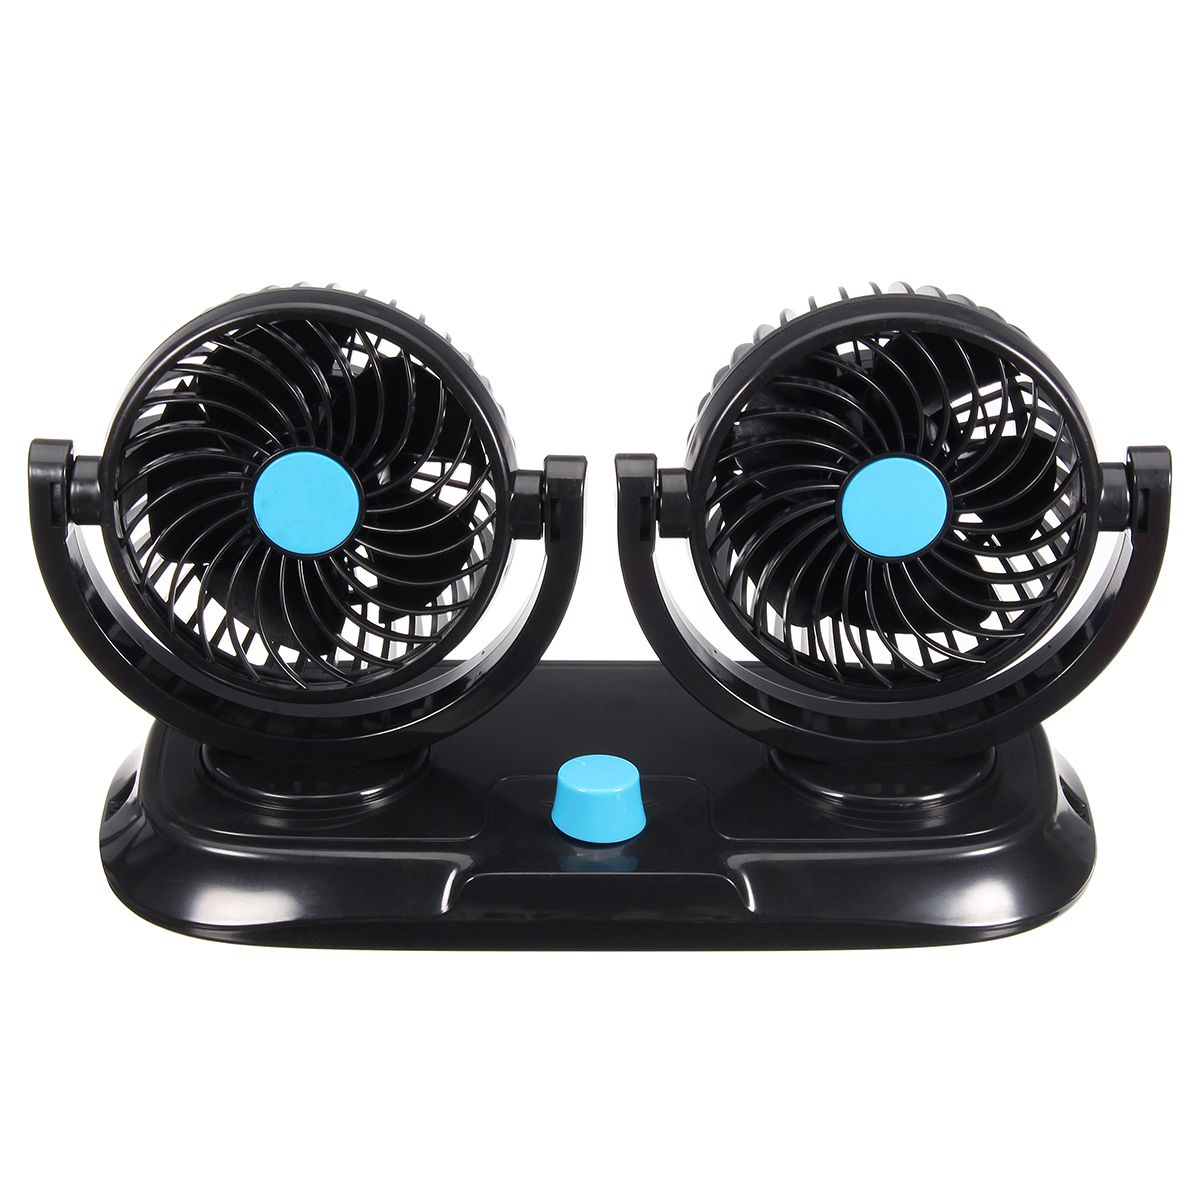 12V Adjustable Double 360 Degrees Mini Oscillating Fan Rotation Cooling Fan Air Conditioner